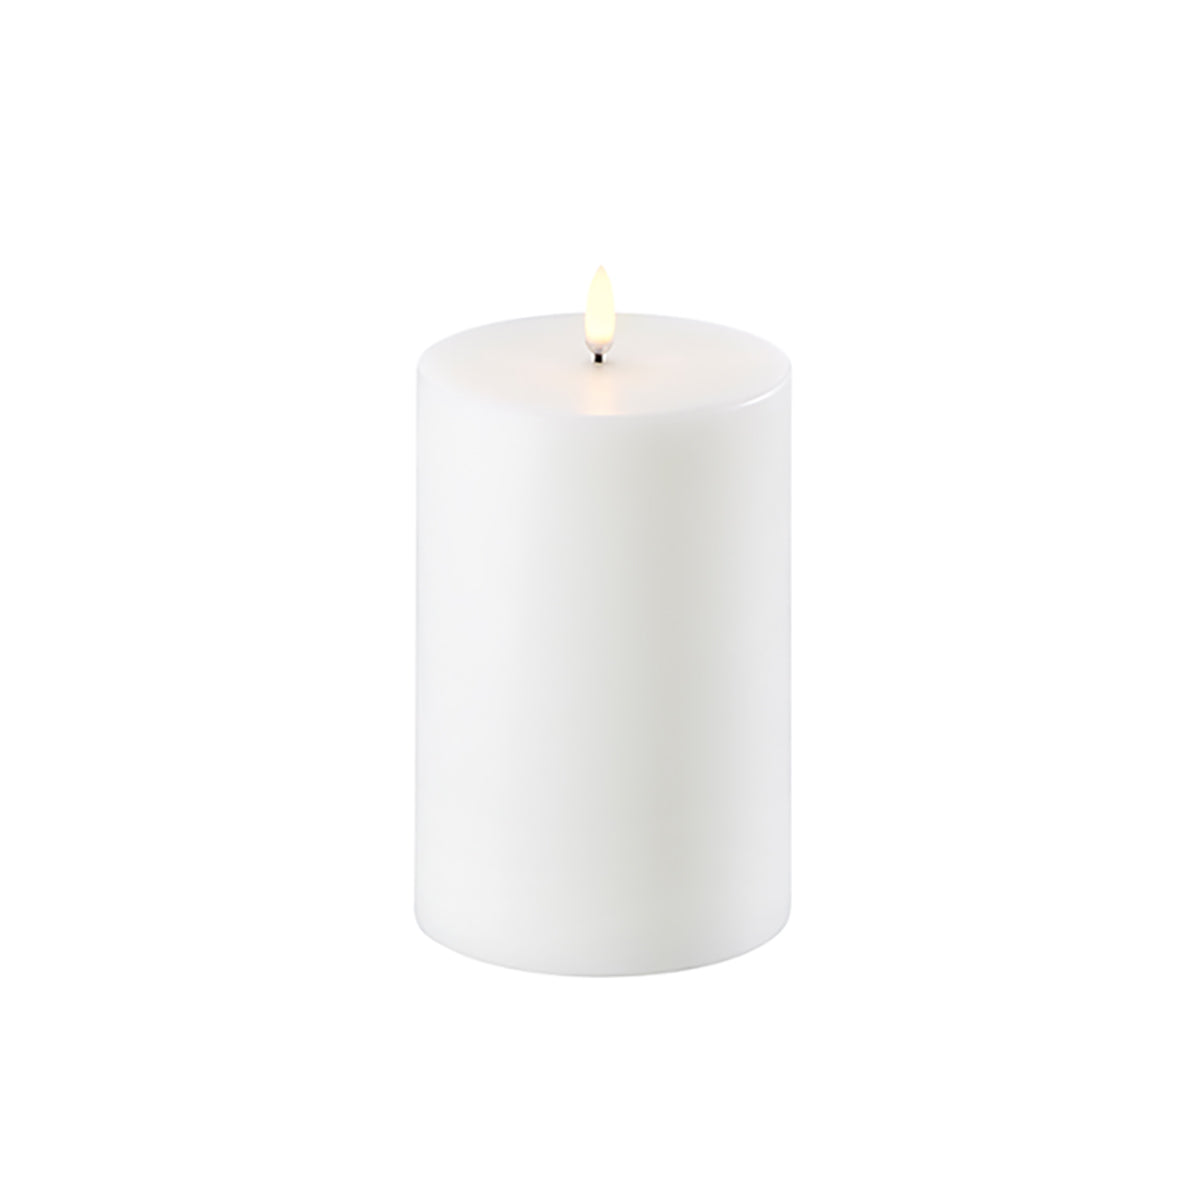 Uyuni Single Wick Pillar Candle Nordic White 10.1cm x 15.2cm